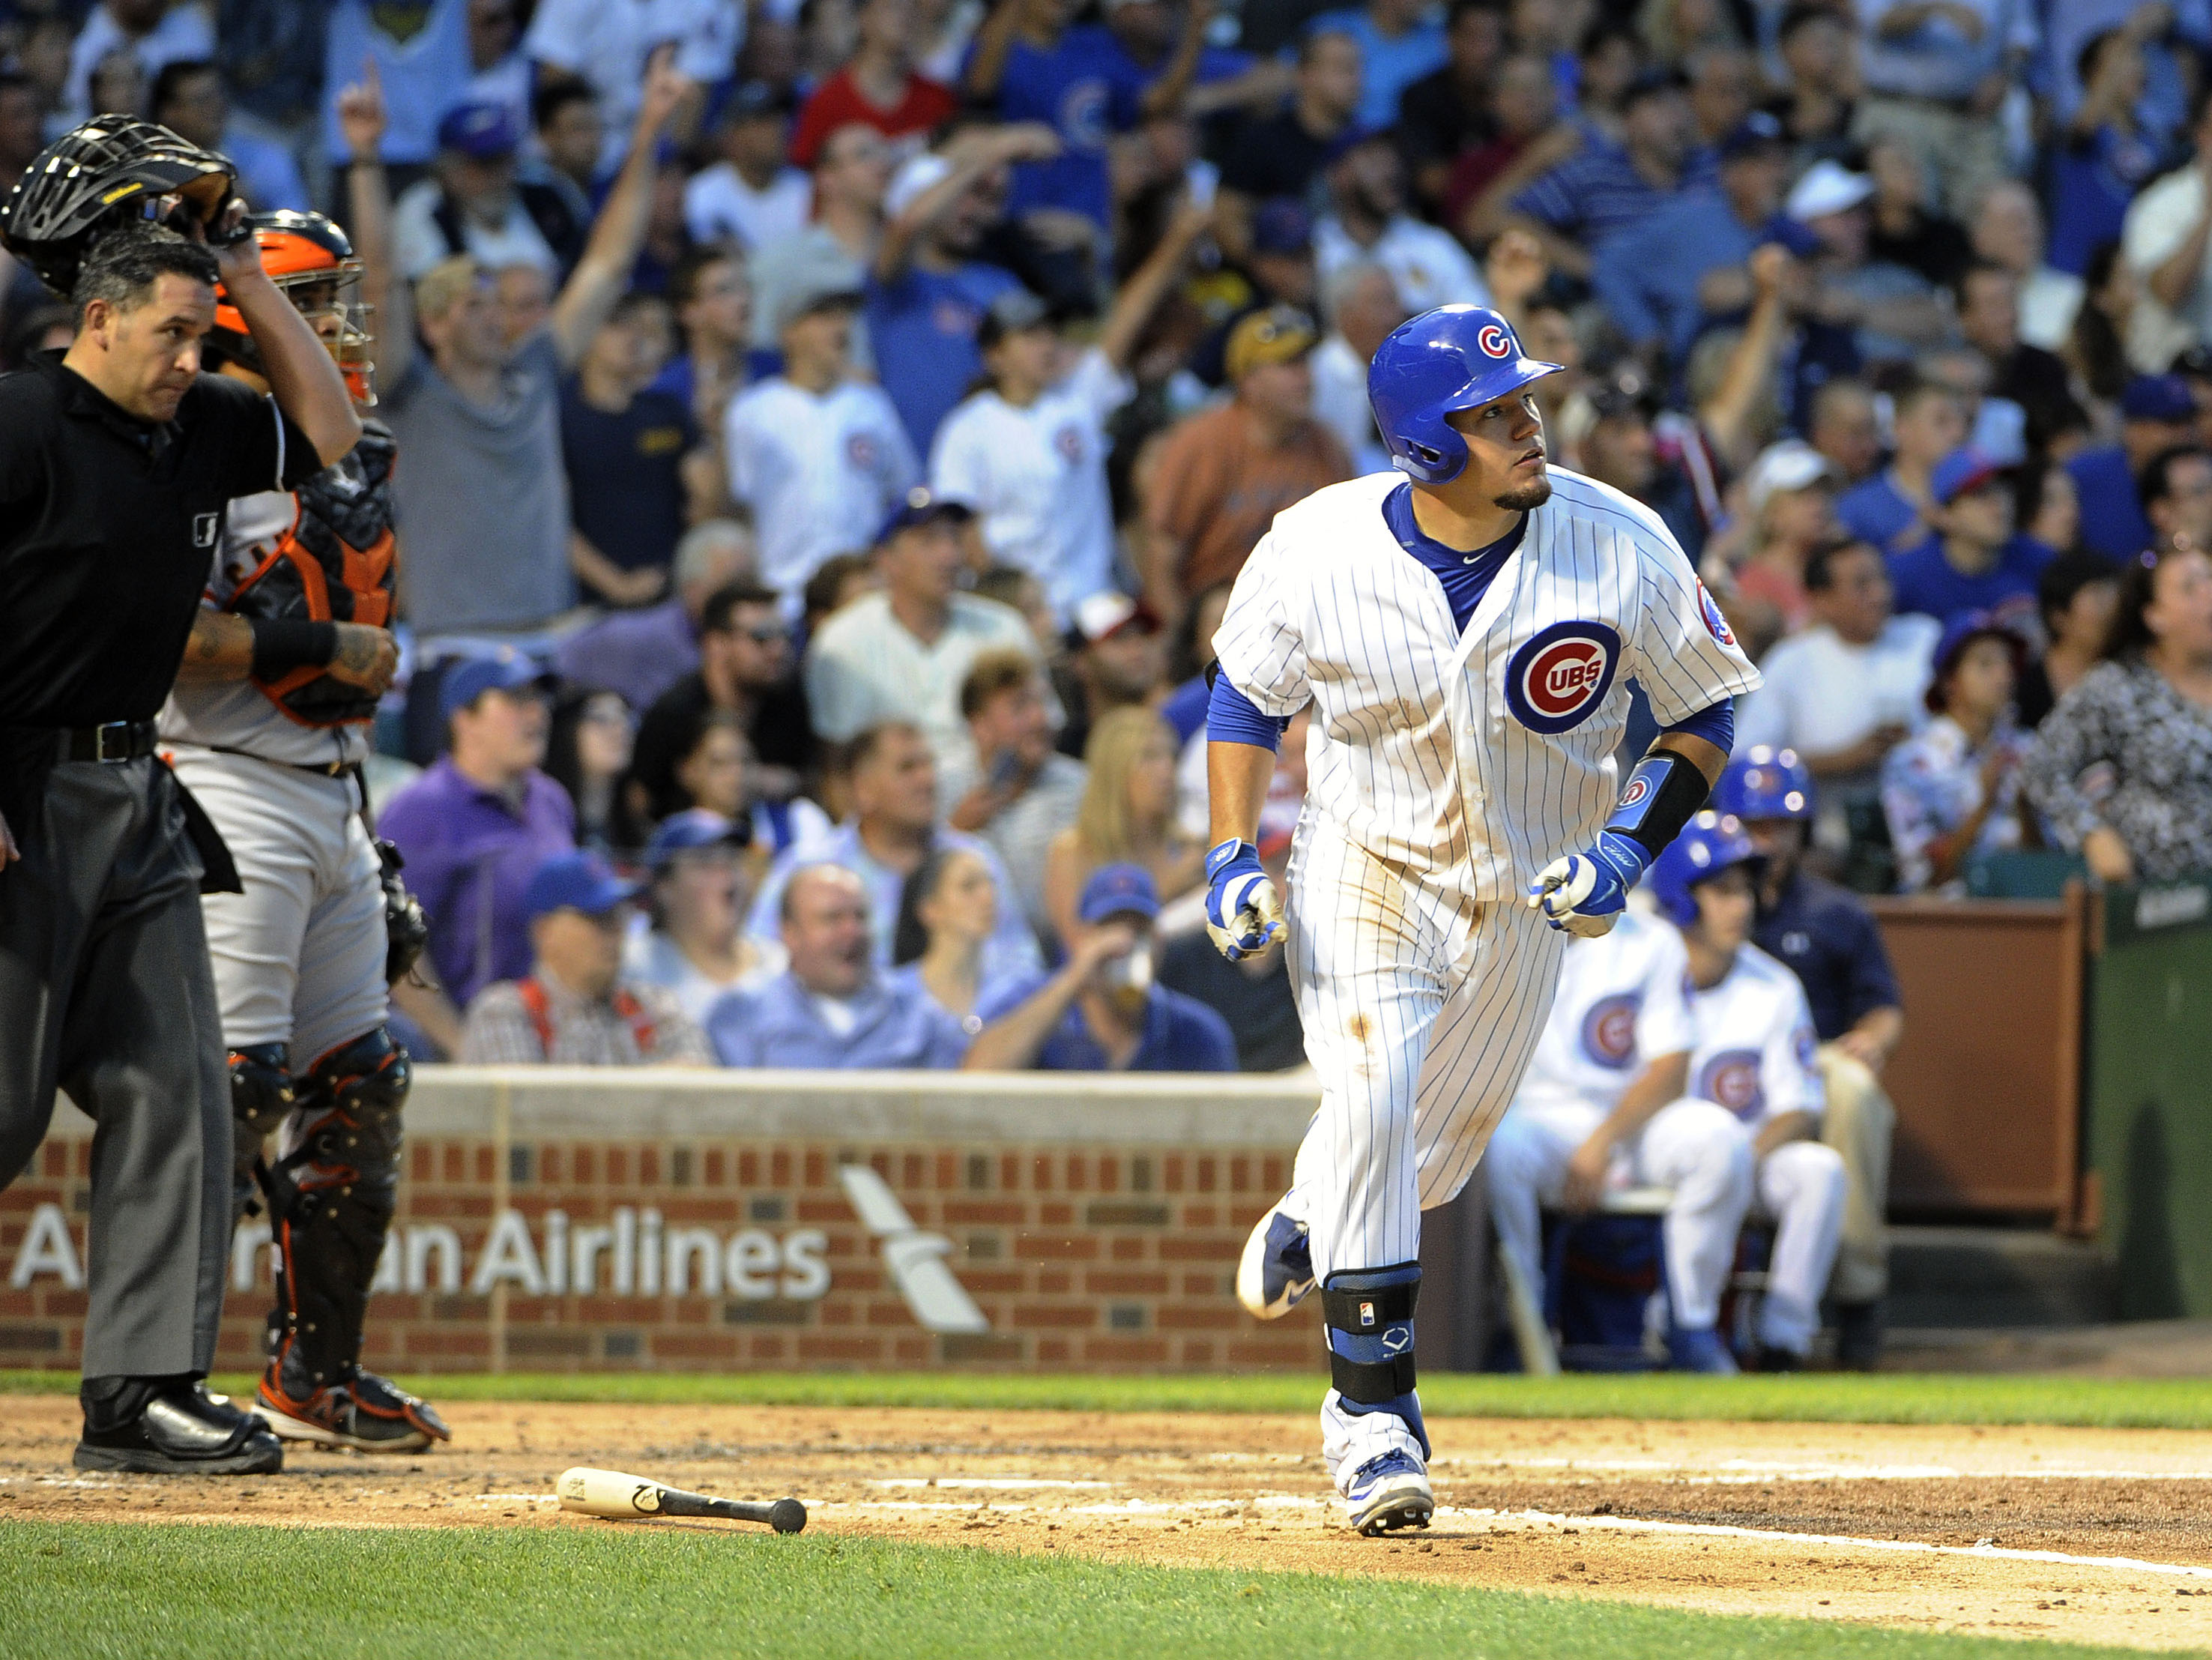 Chicago Cubs' Kyle Schwarber watches his three-run home run against the San Francisco Giants during the second inning of a baseball game, Thursday, Aug. 6, 2015, in Chicago. (AP Photo/David Banks)